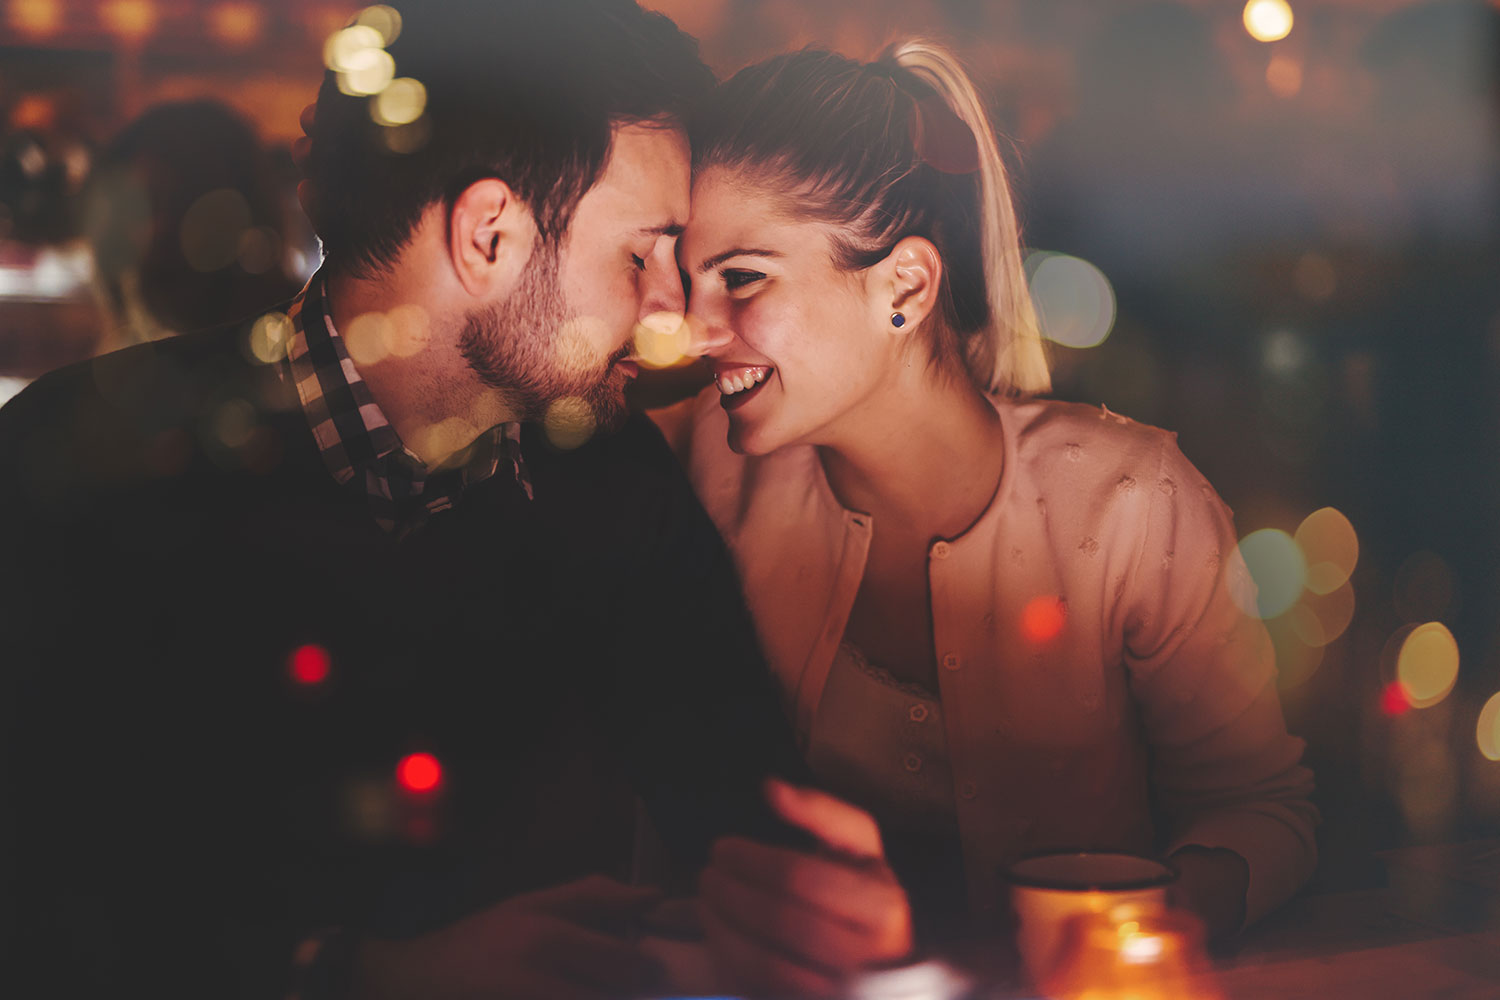 30 Date Night Ideas That Don't Involve Drinking